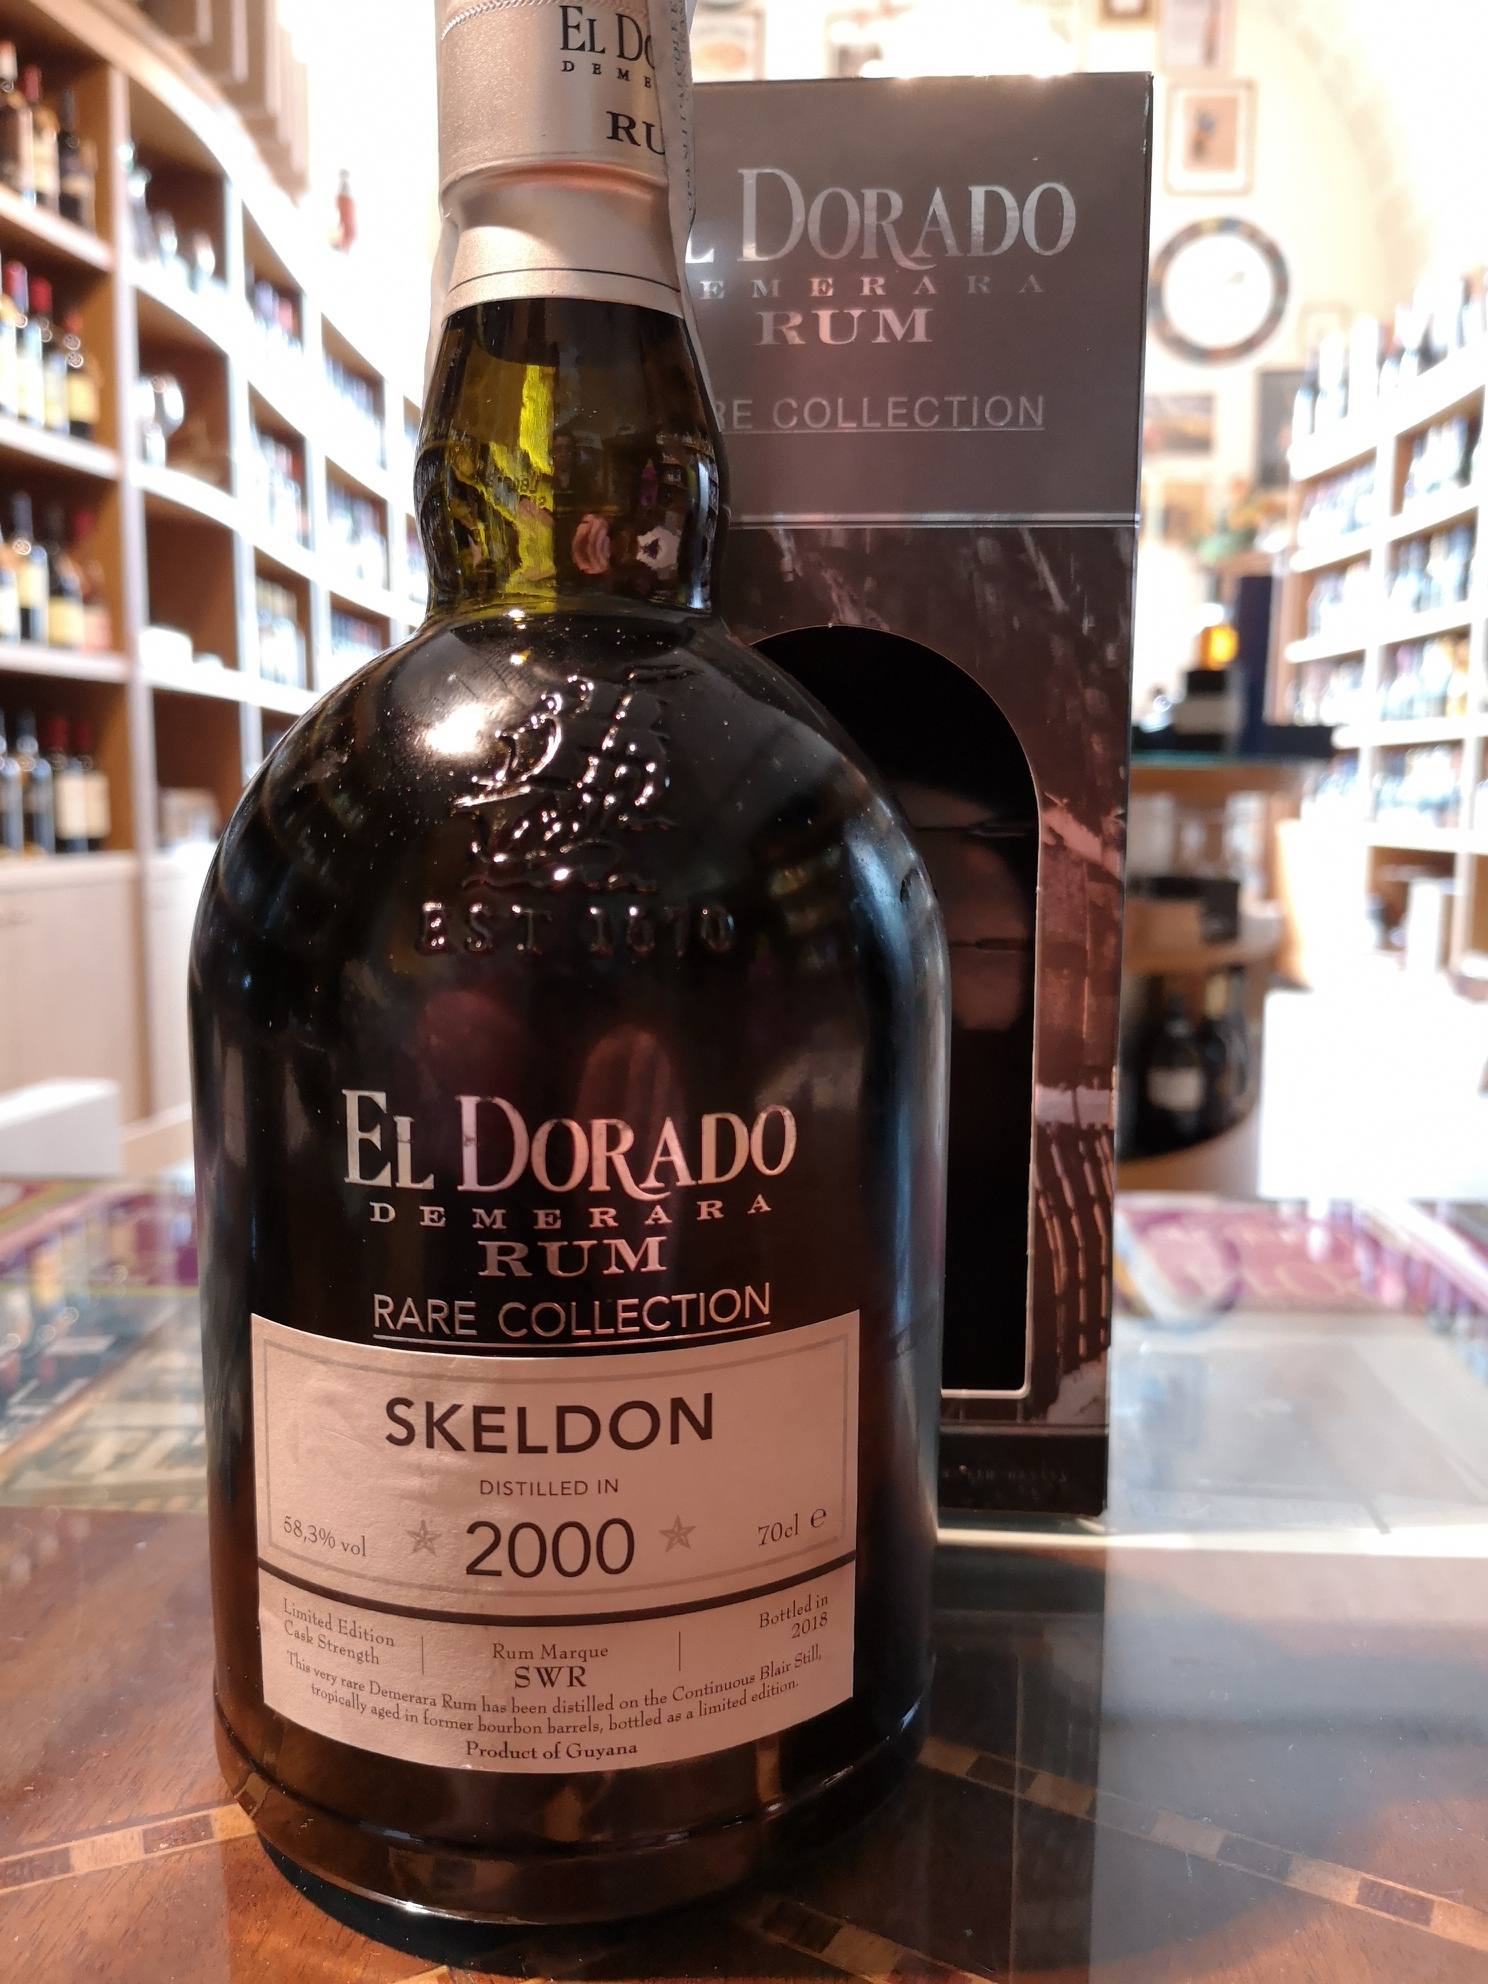 Rum 'Rare Collection Skeldon' El Dorado Demerara 2000